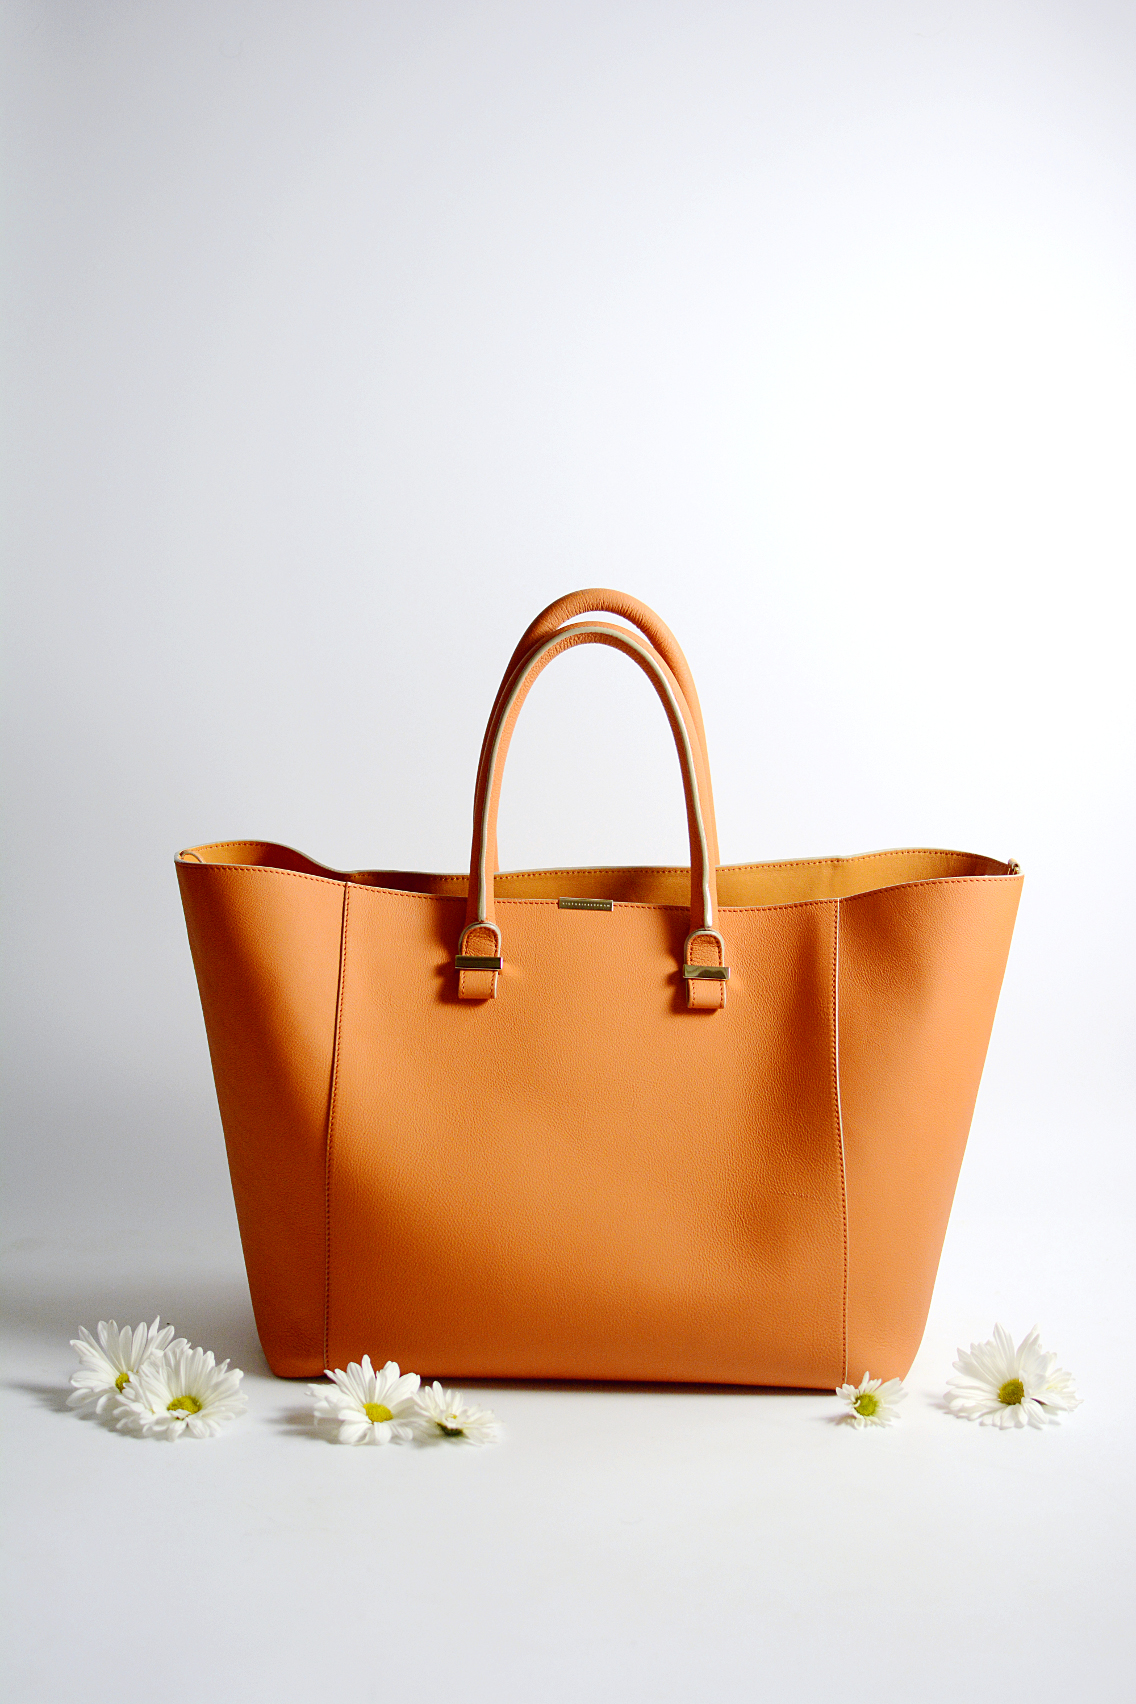 Victoria Beckham Liberty Tote Persimmon Orange 10